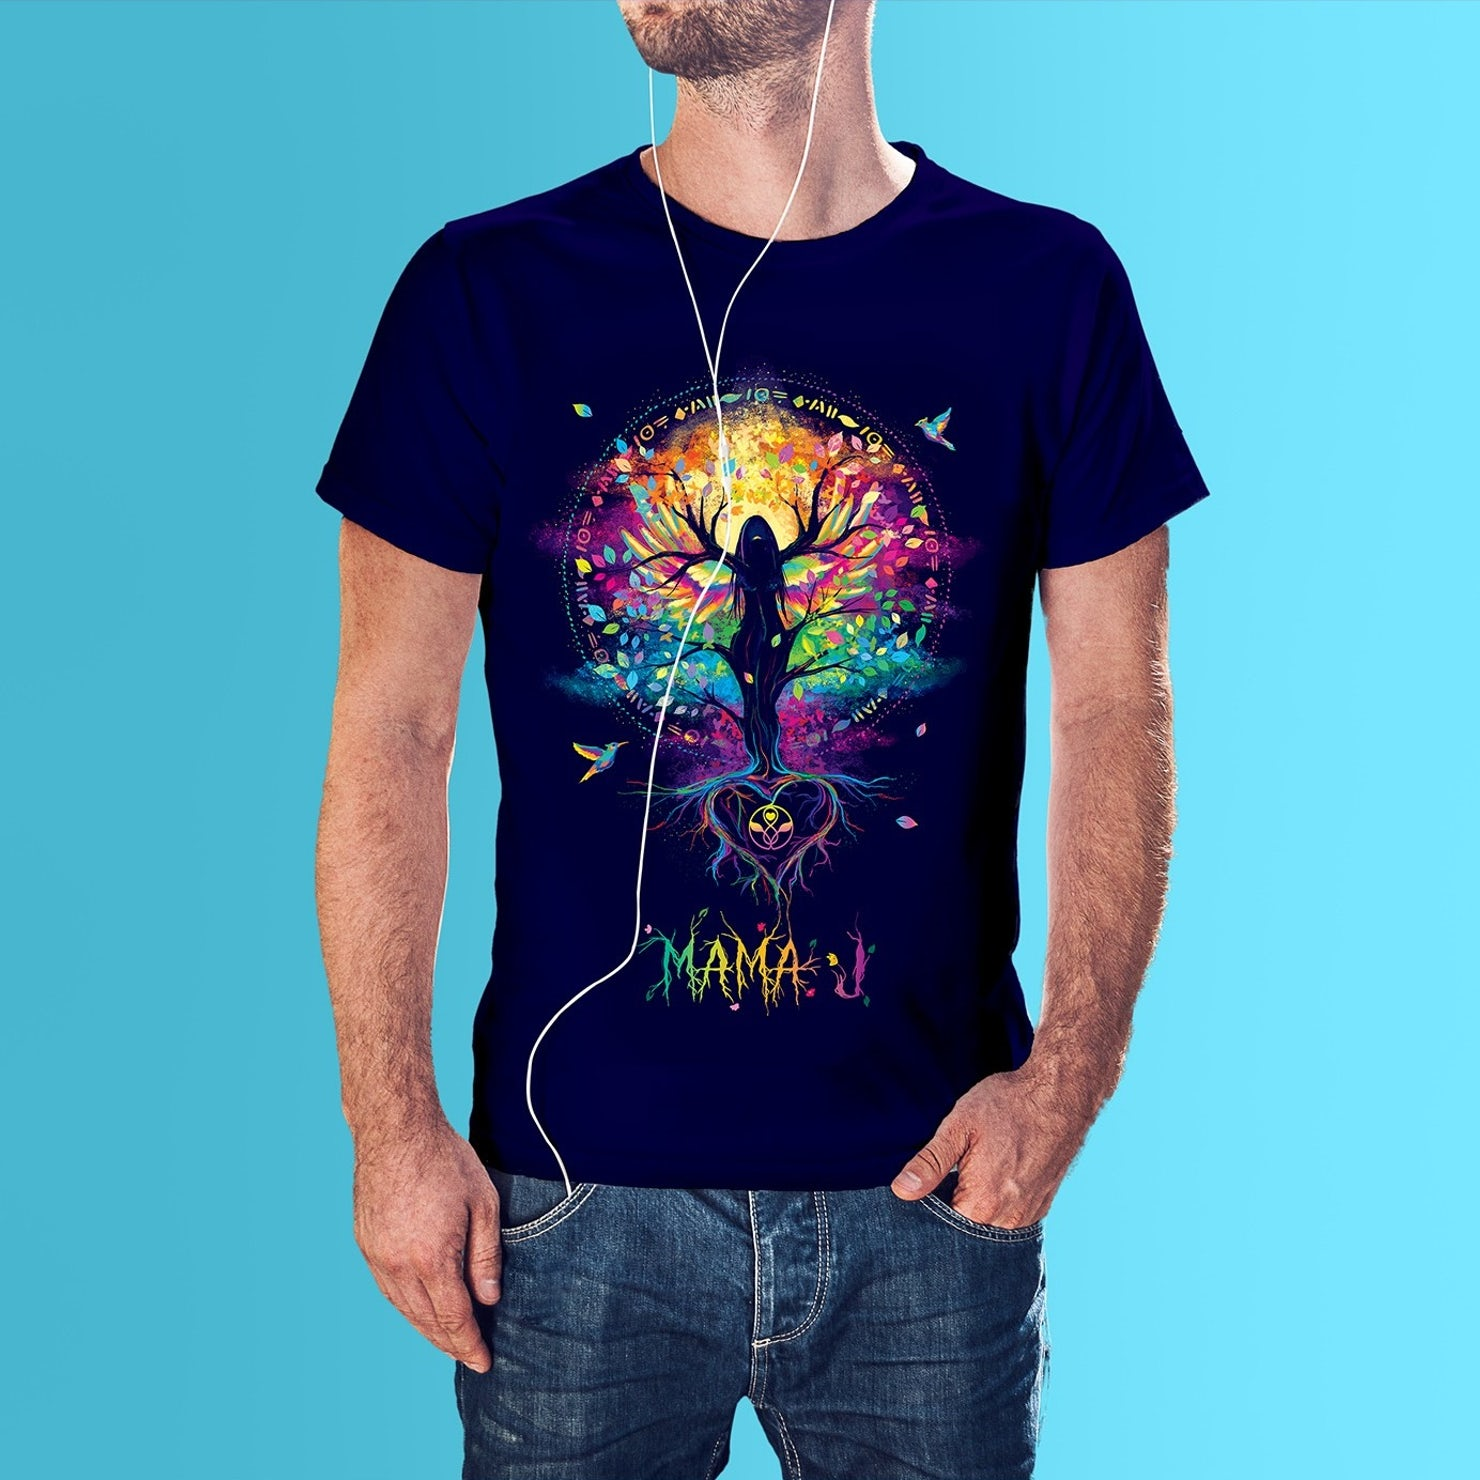 baa9274f0416 The 10 best freelance t-shirt designers for hire in 2019 - 99designs